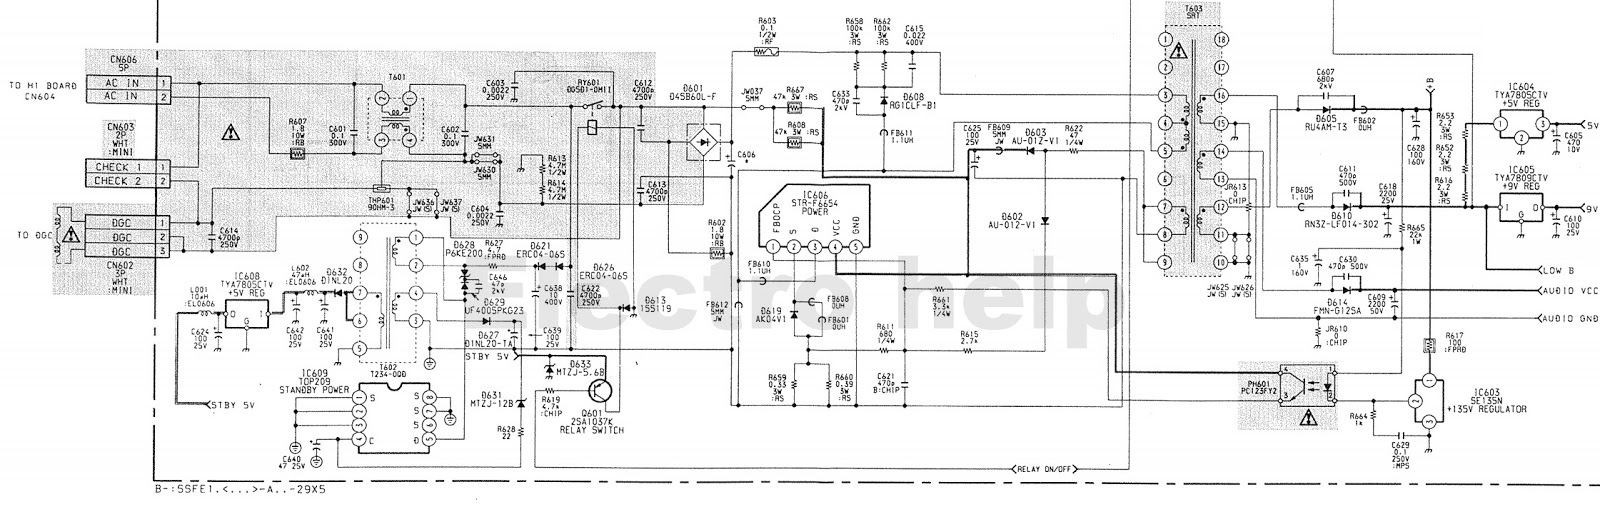 xm 554zr sony xplod wiring diagram